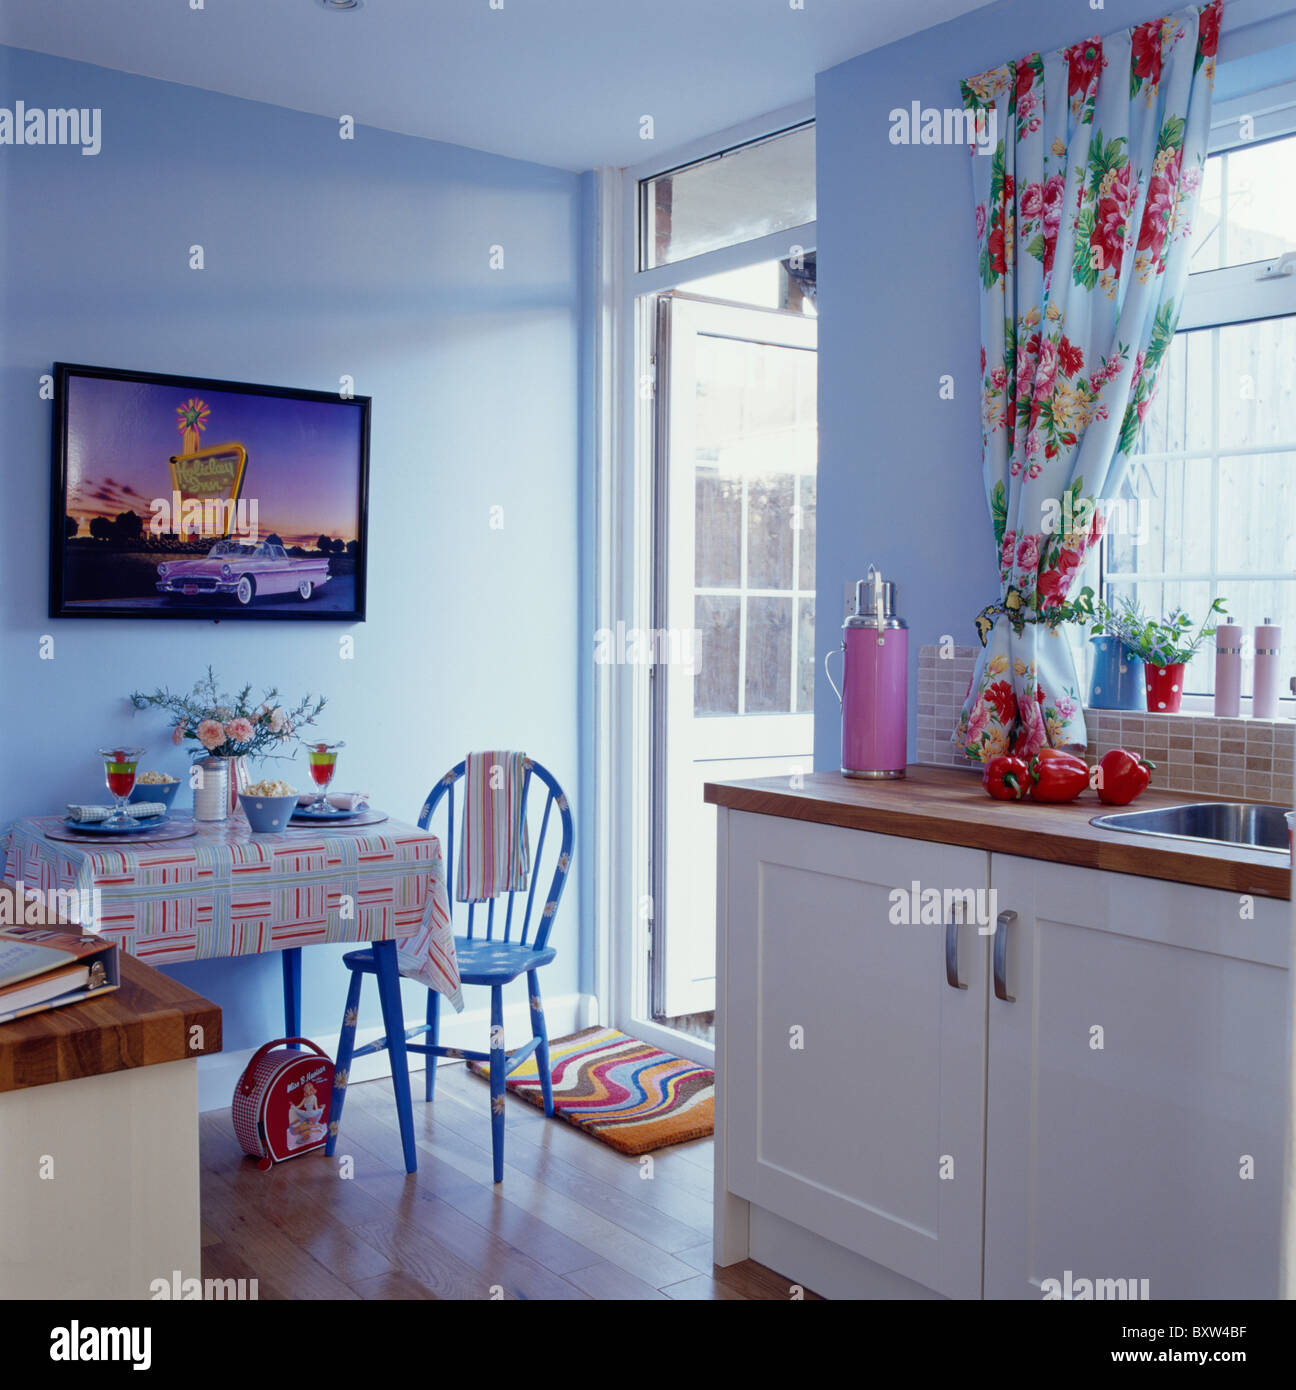 Blue Kitchen Table And Chairs: Large Picture On Wall Above Small Table And Chair In Pale